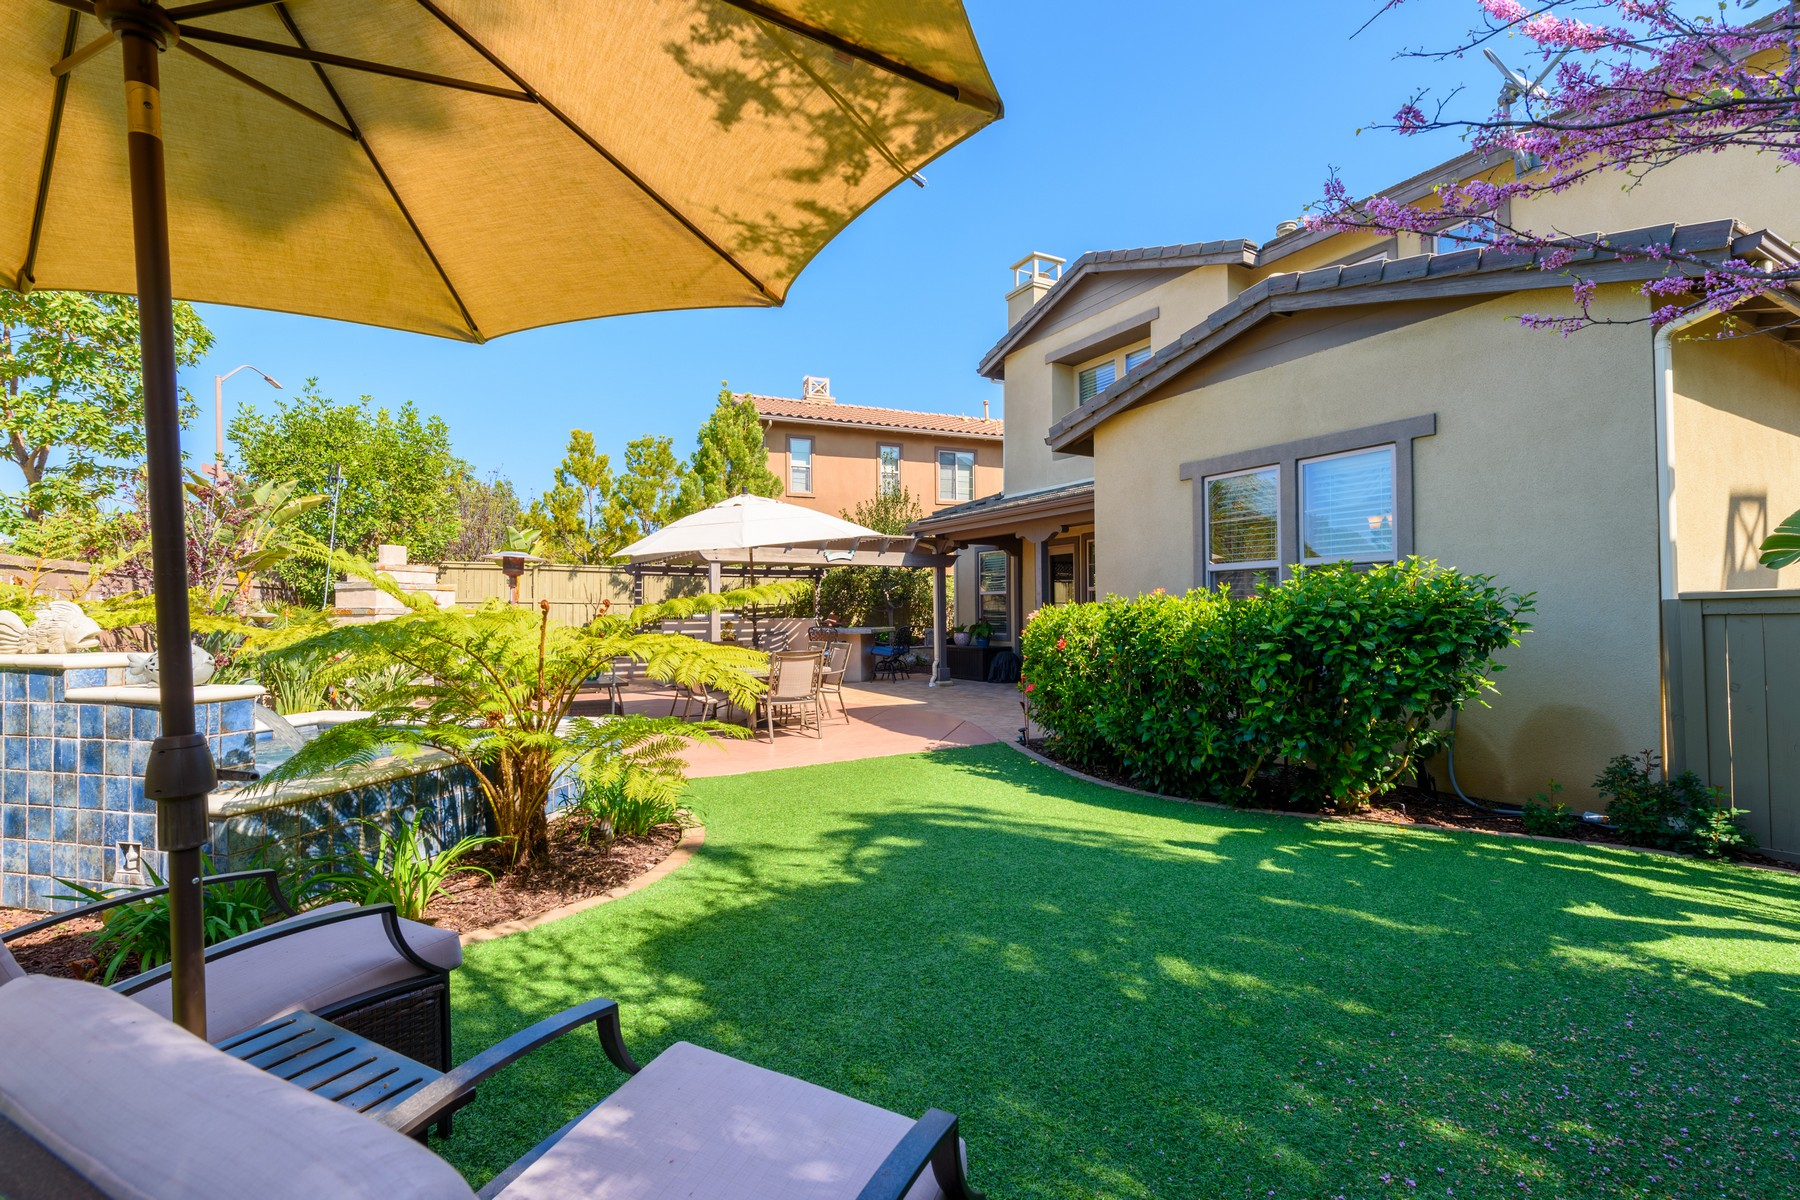 Single Family Home for Sale at 8291 Katherine Claire Ln San Diego, California, 92127 United States